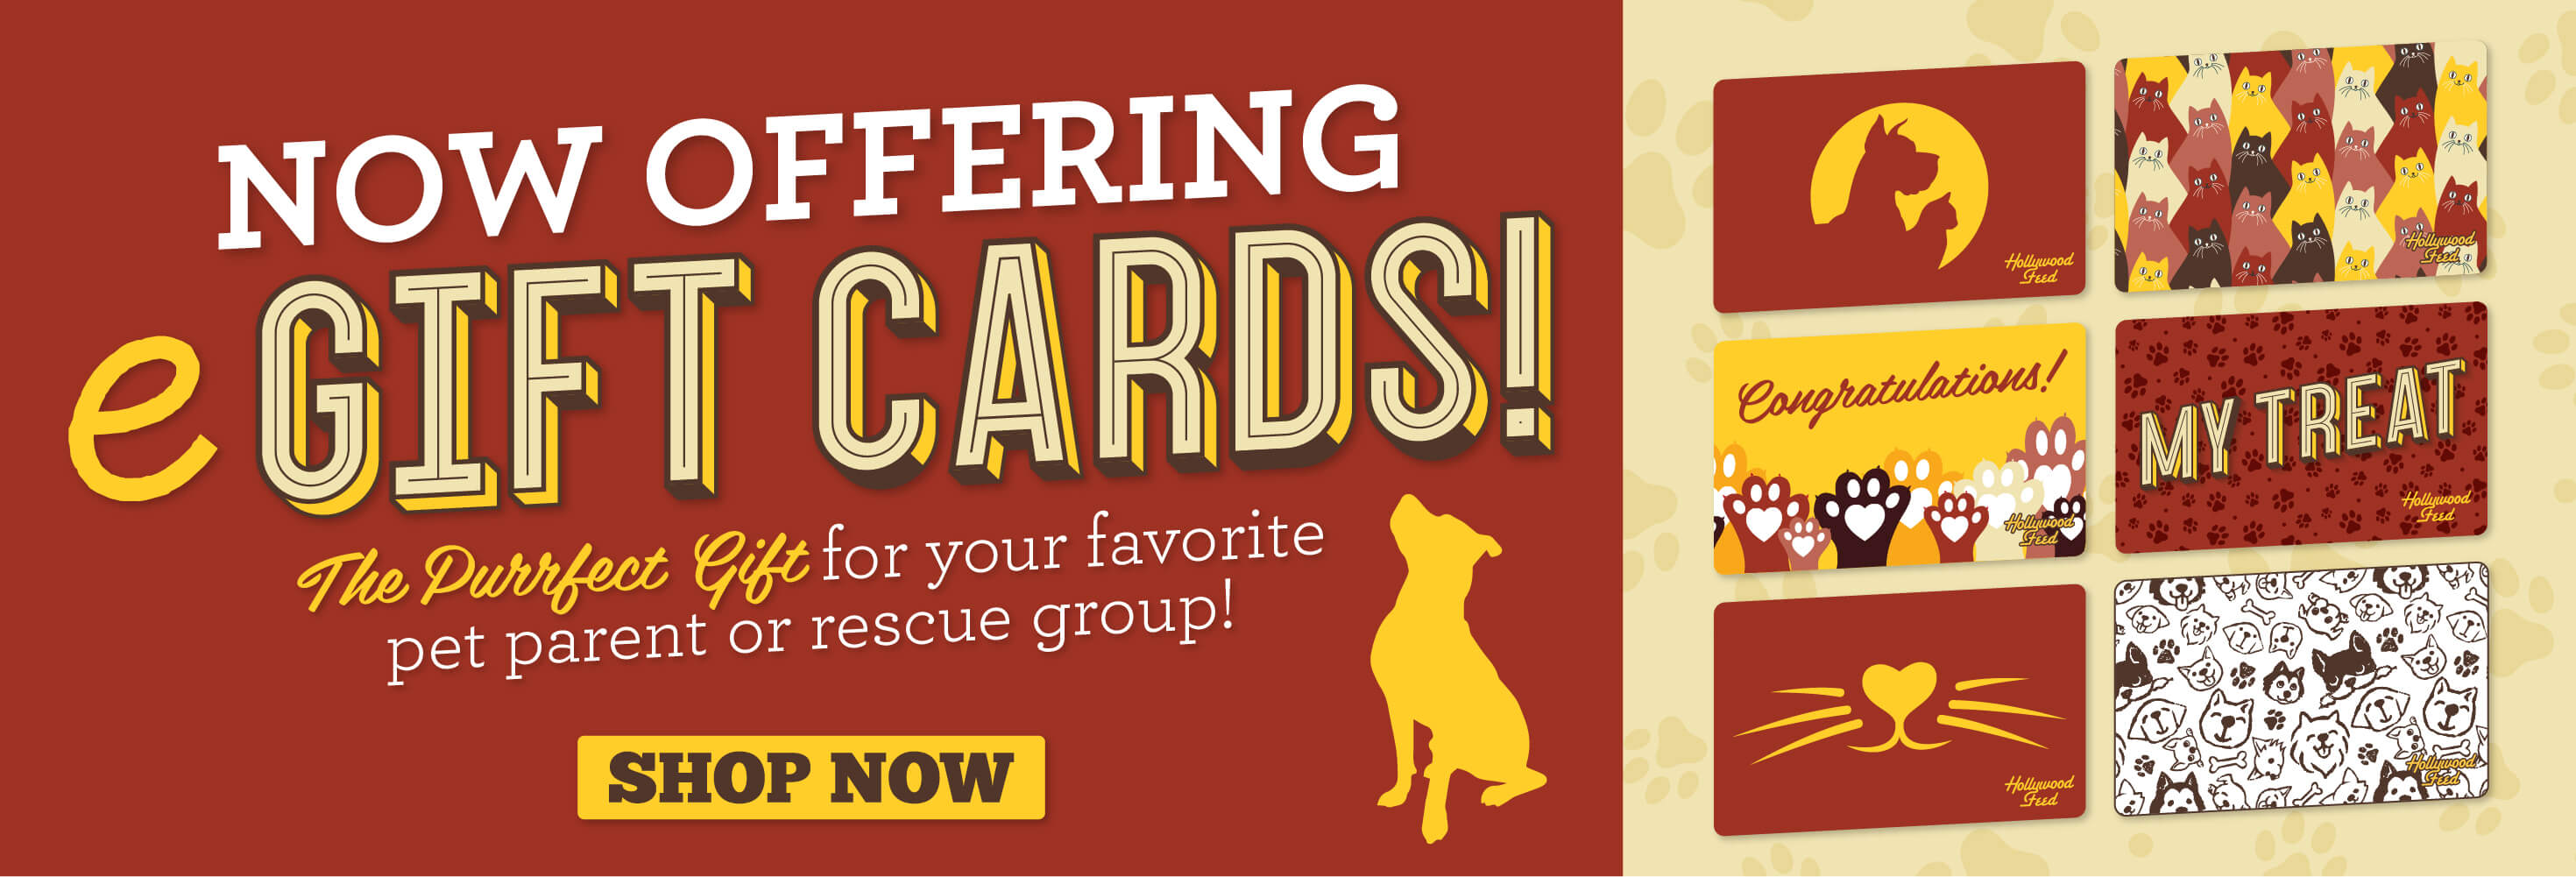 Now offering E Gift Cards! the purrfect gift for your favorite pet parent or rescue group